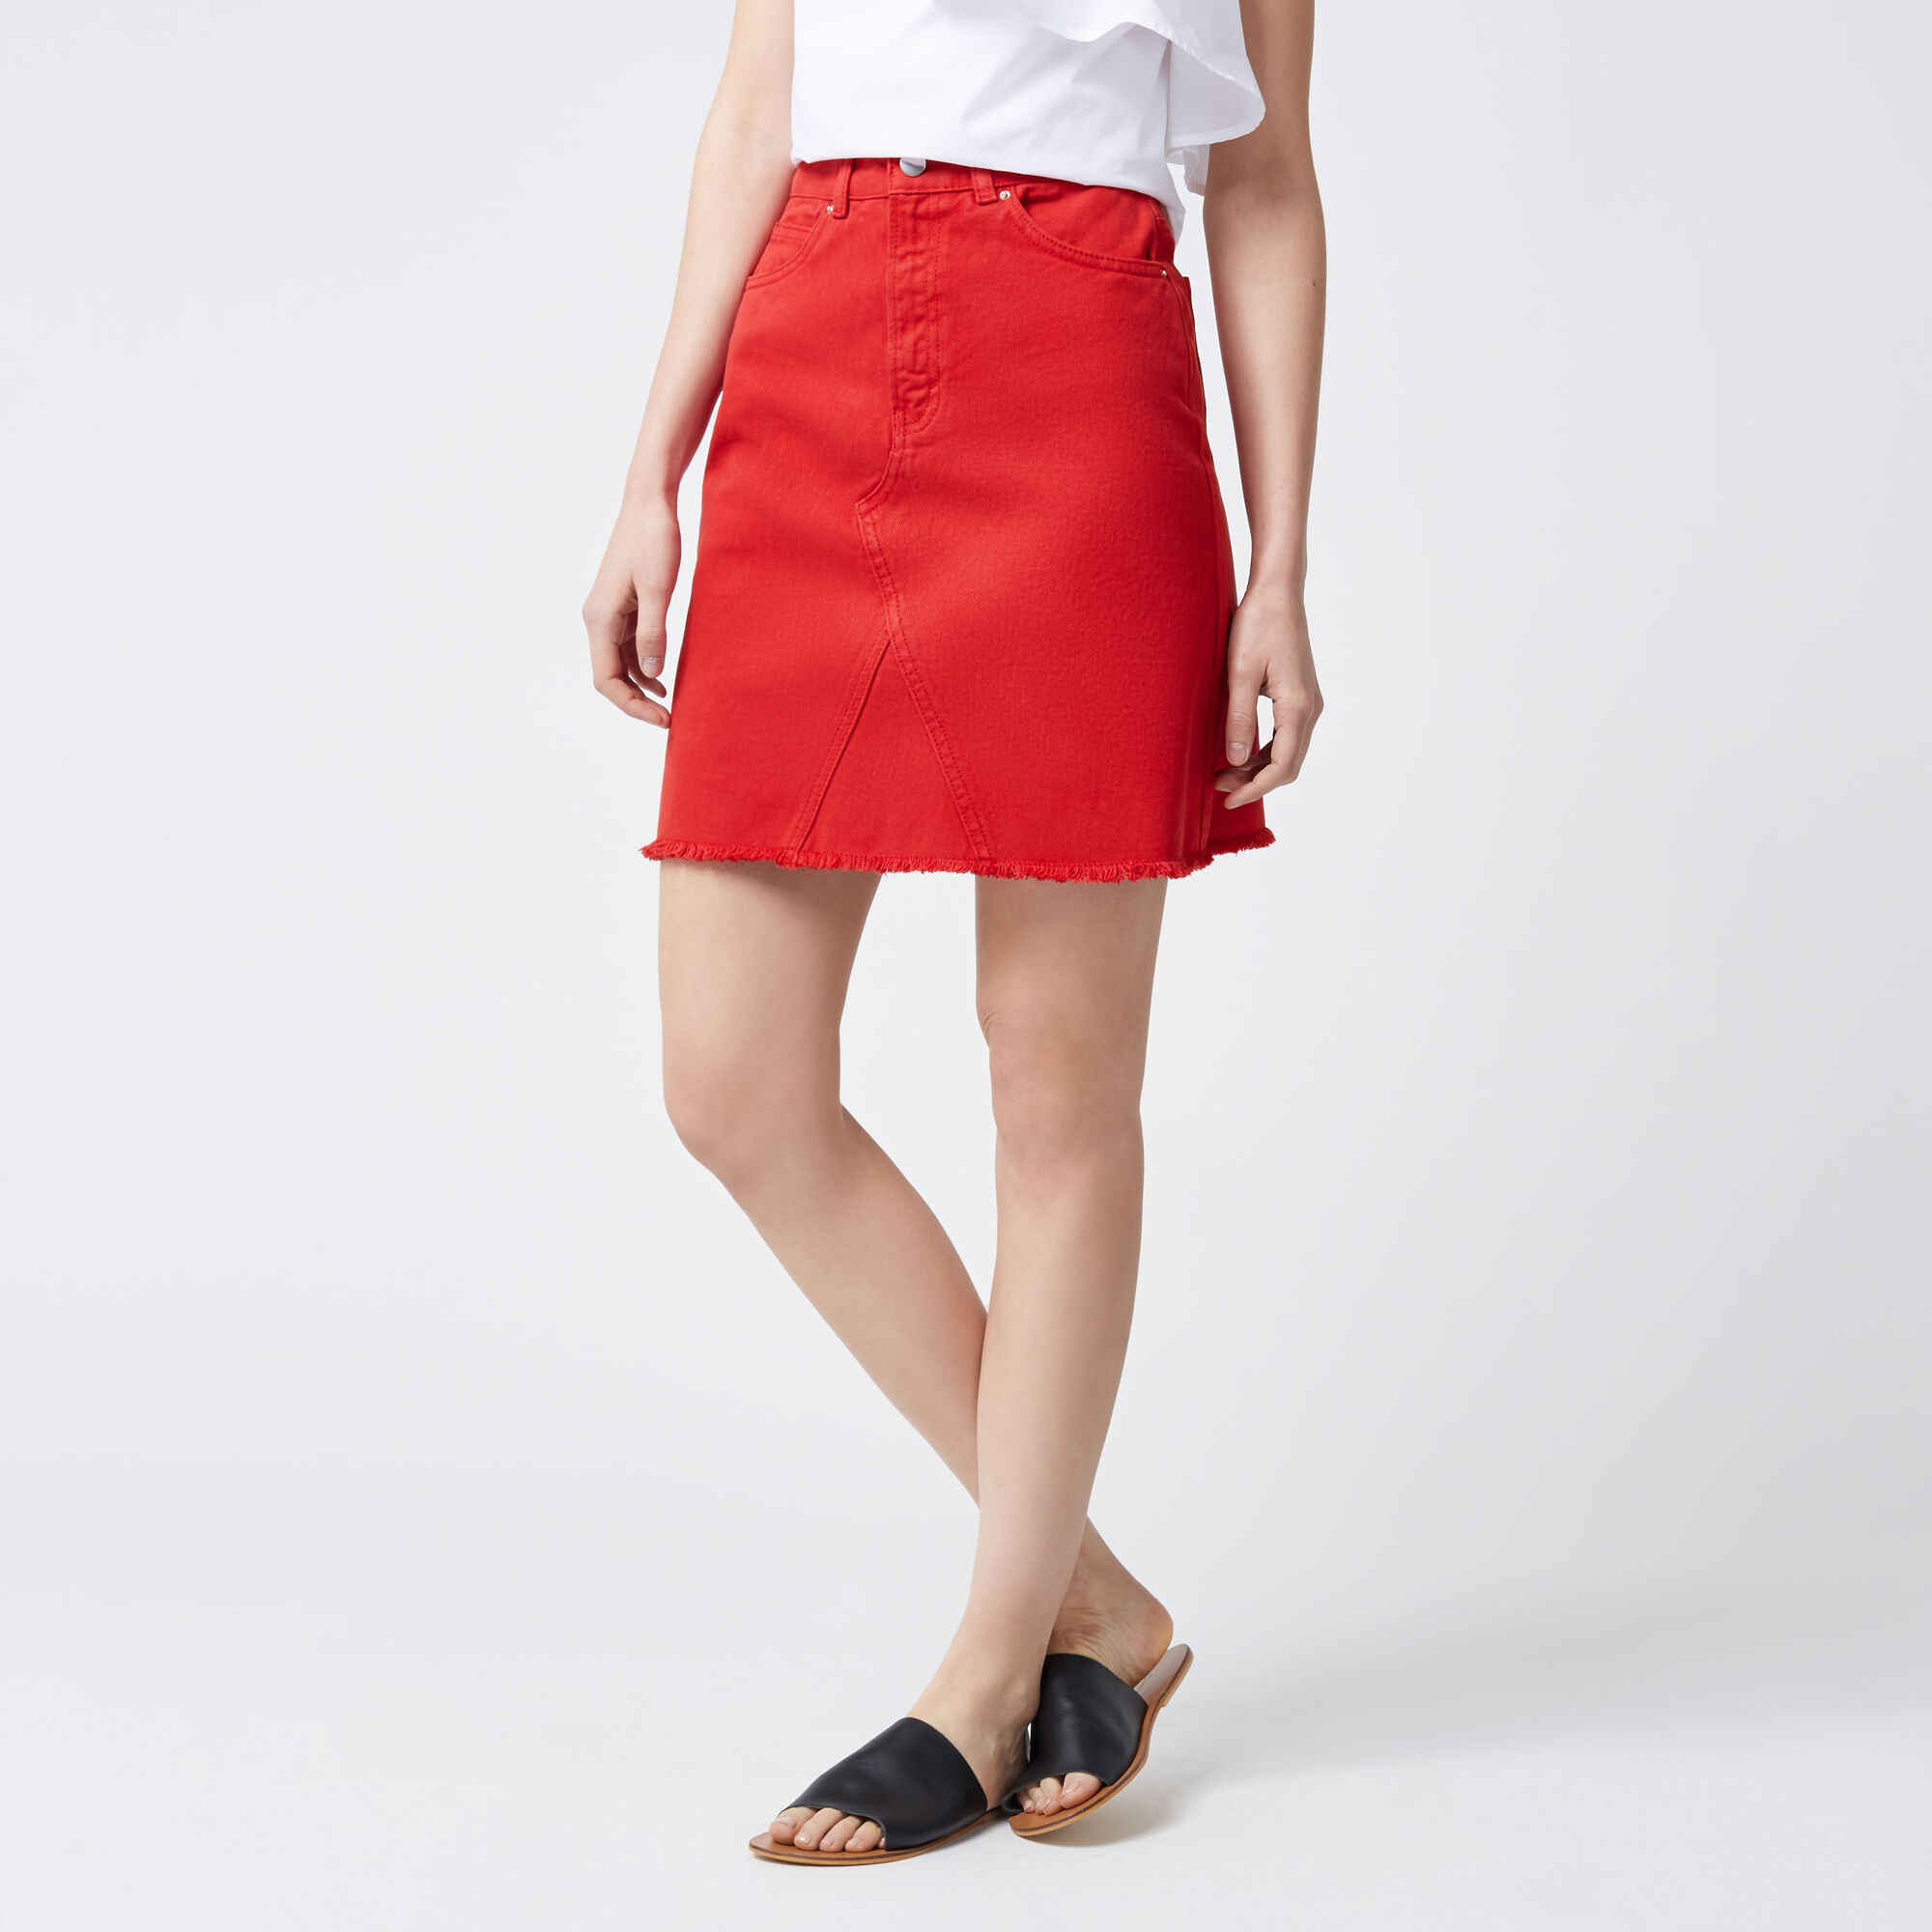 Warehouse, Reconstructed Denim Skirt Bright Red 1